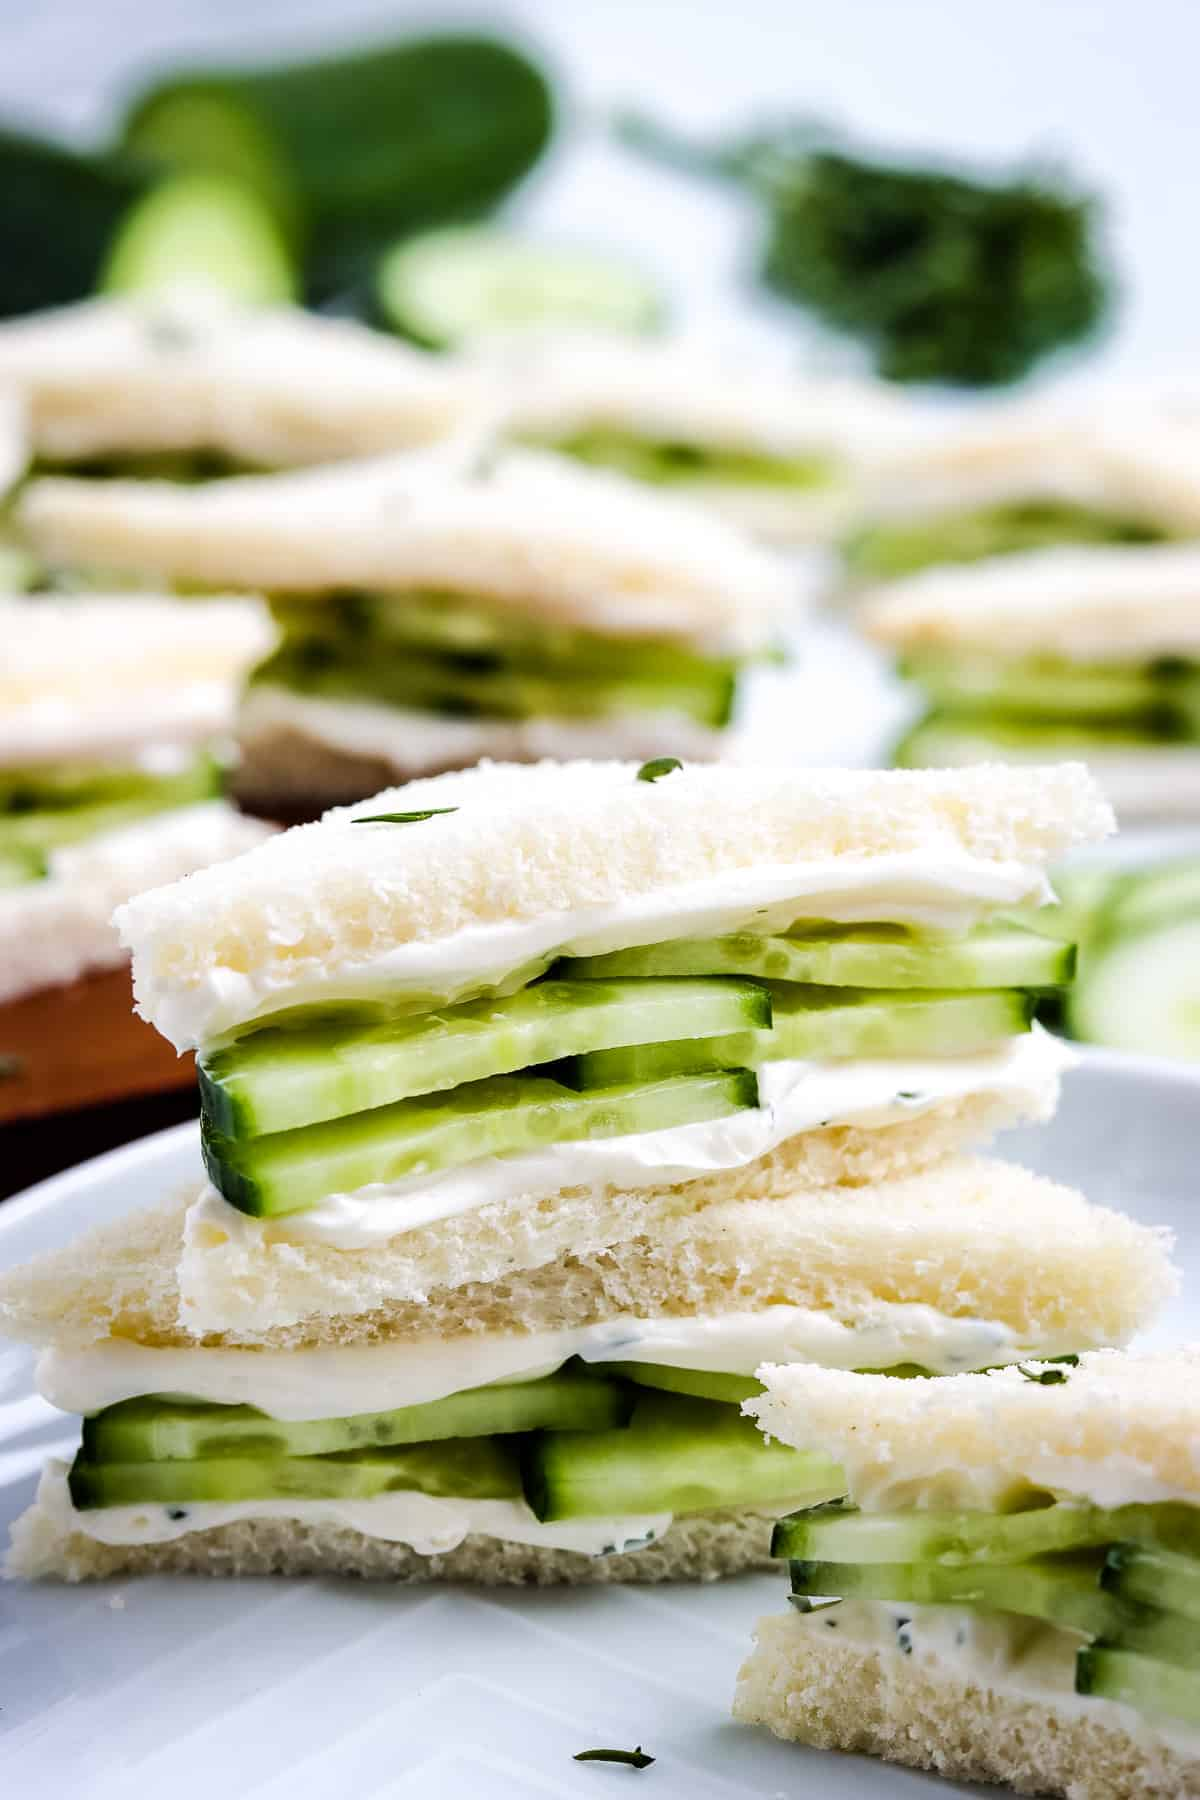 Cucumber Sandwich cut in half and stacked on top of each other